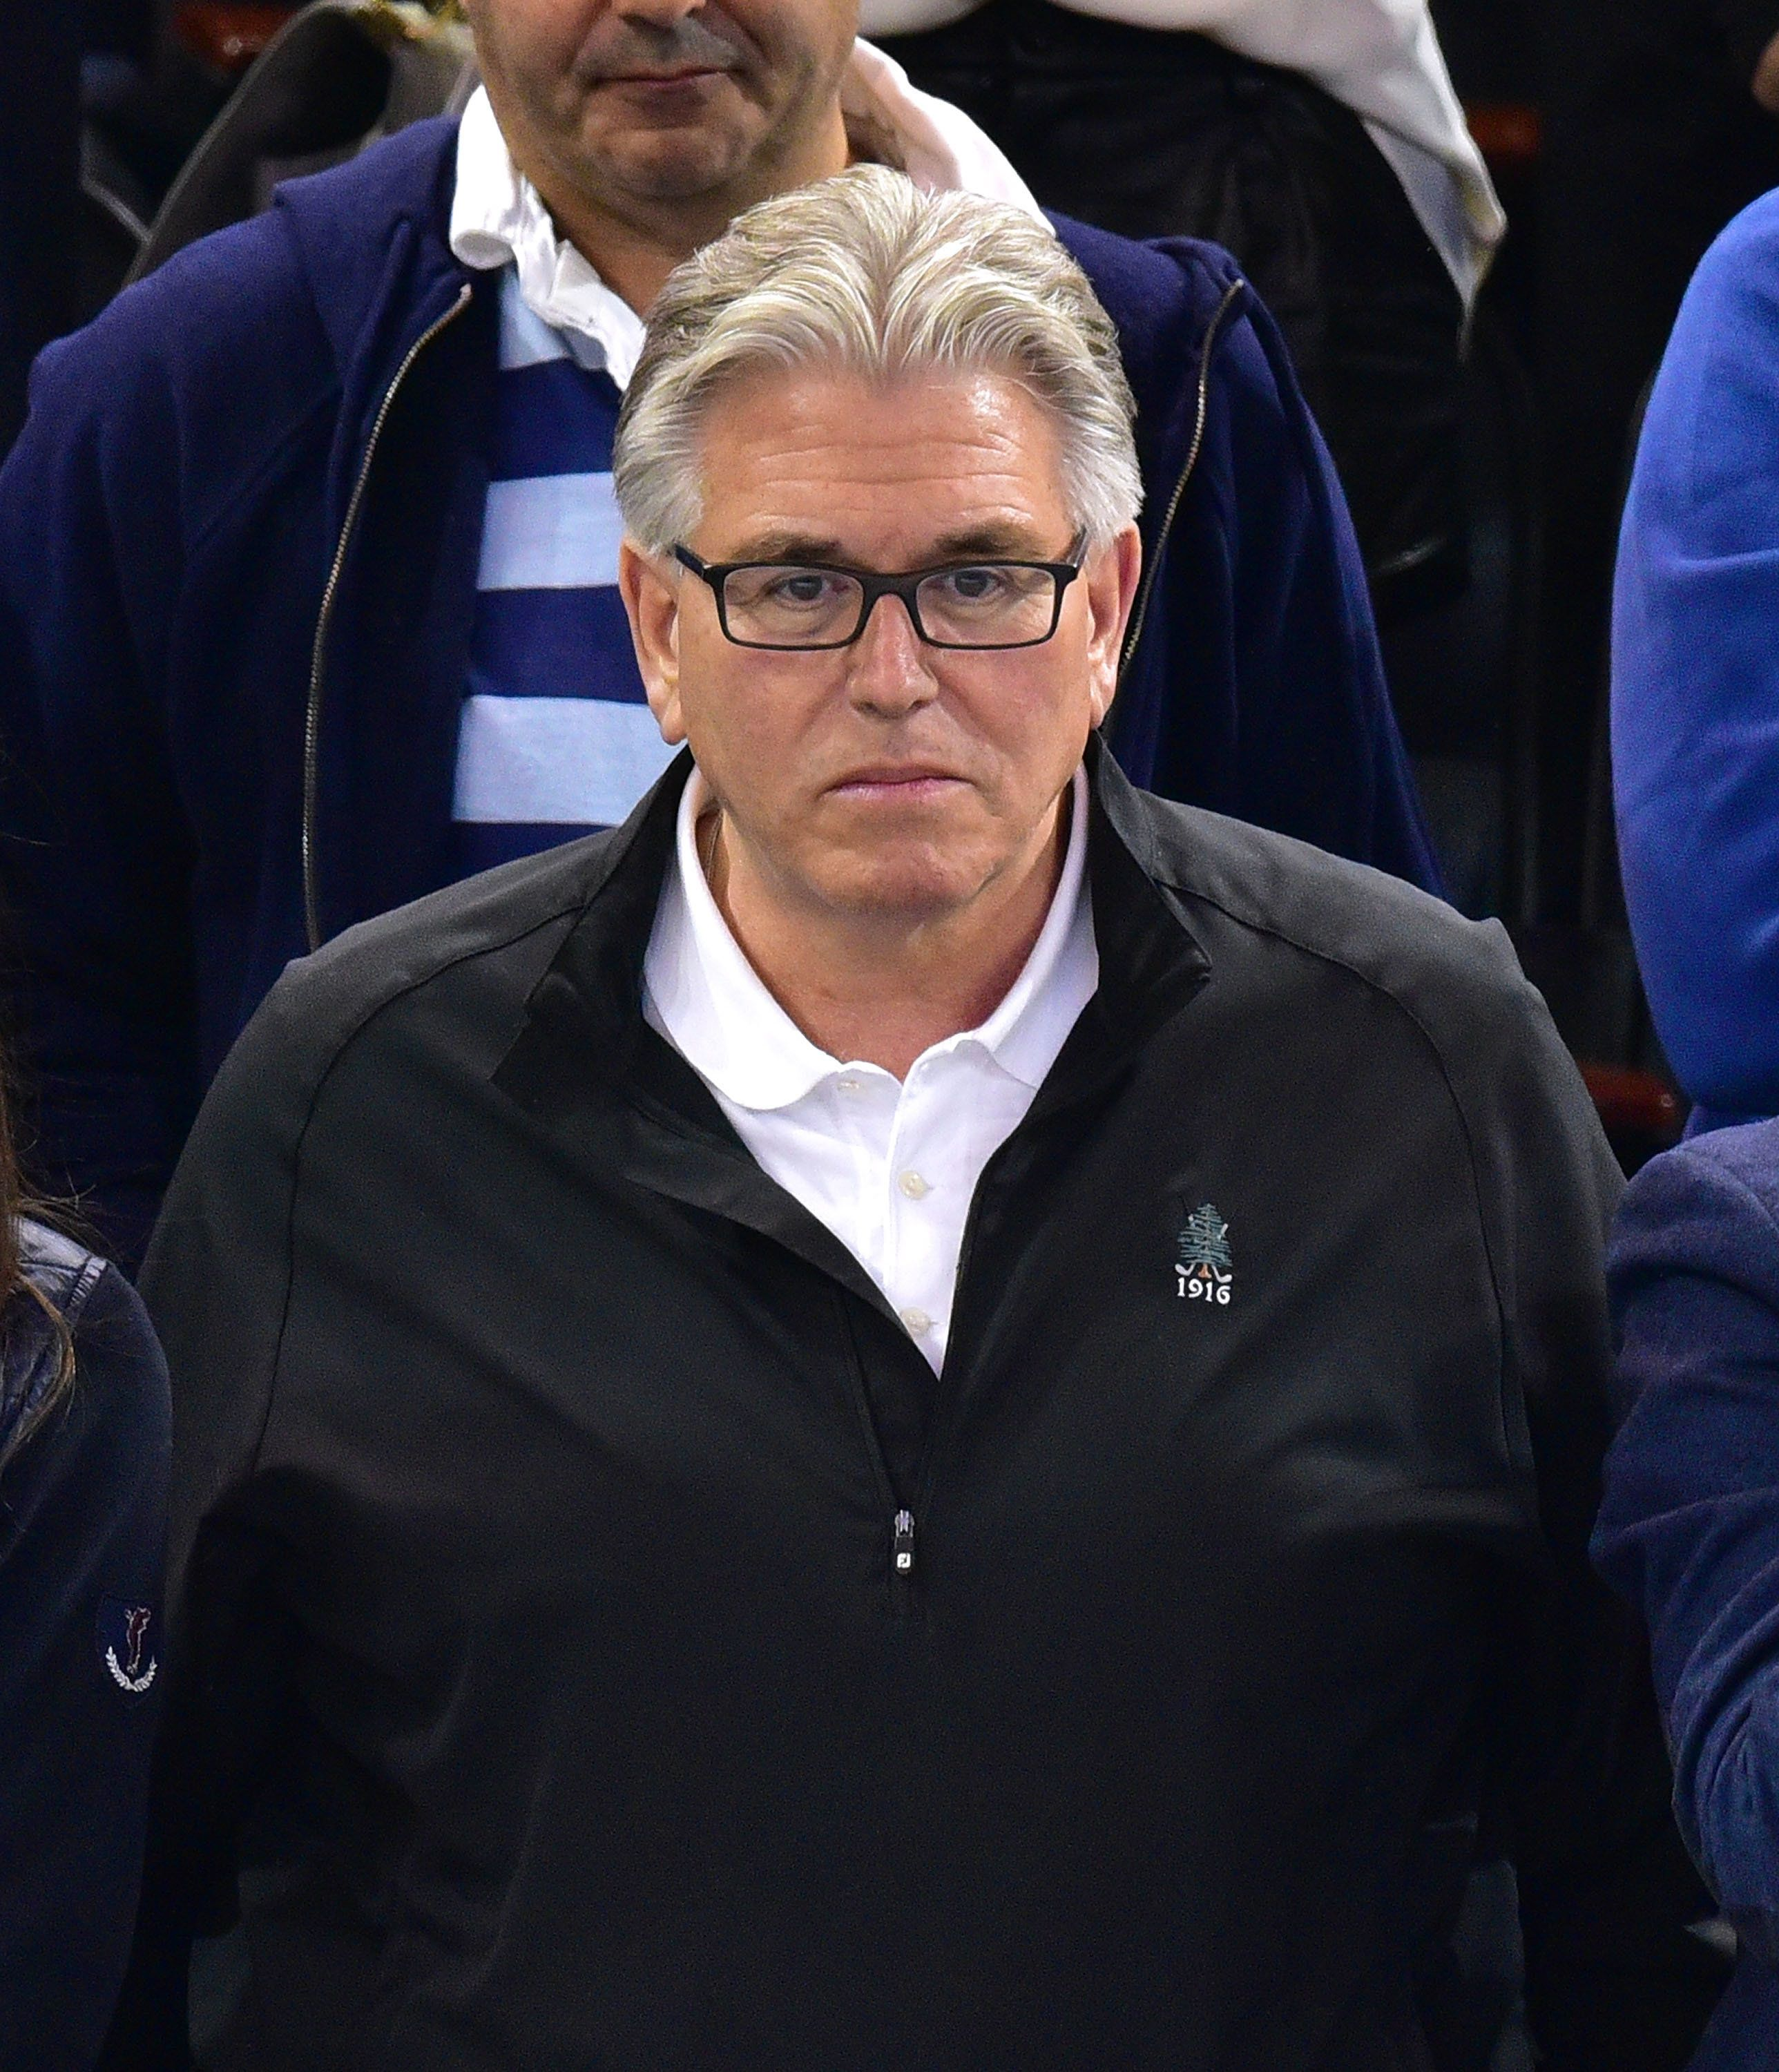 NEW YORK, NY - MAY 08:  Mike Francesa attends the Washington Capitals vs New York Rangers game at Madison Square Garden on May 8, 2015 in New York City.  (Photo by James Devaney/GC Images)